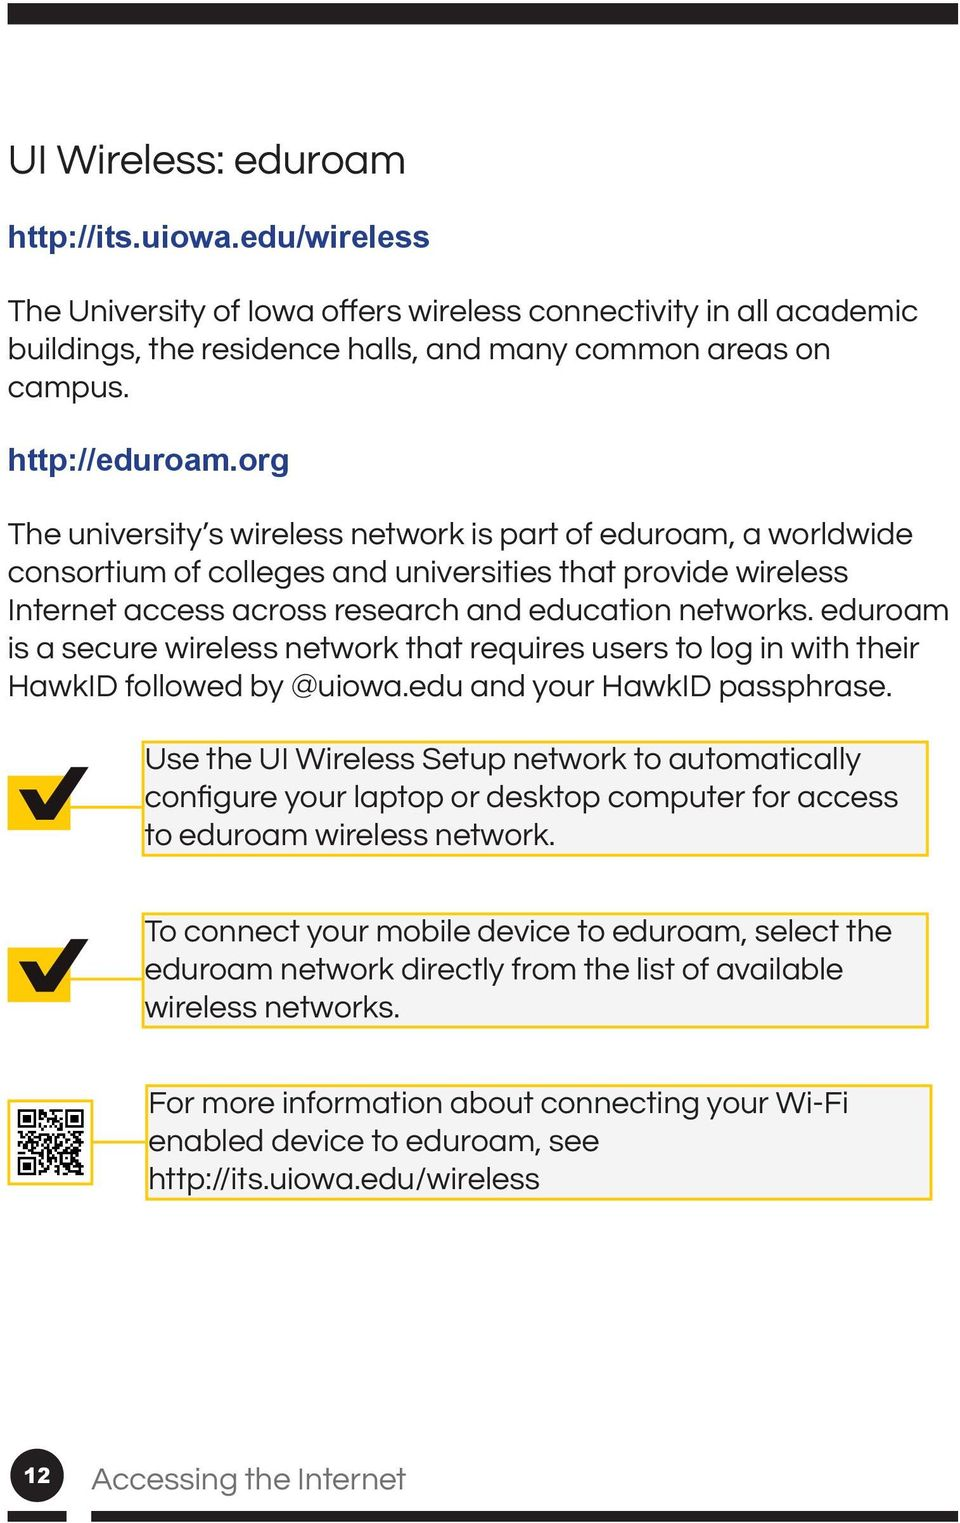 networks. eduroam is a secure wireless network that requires users to log in with their HawkID followed by @uiowa.edu and your HawkID passphrase.